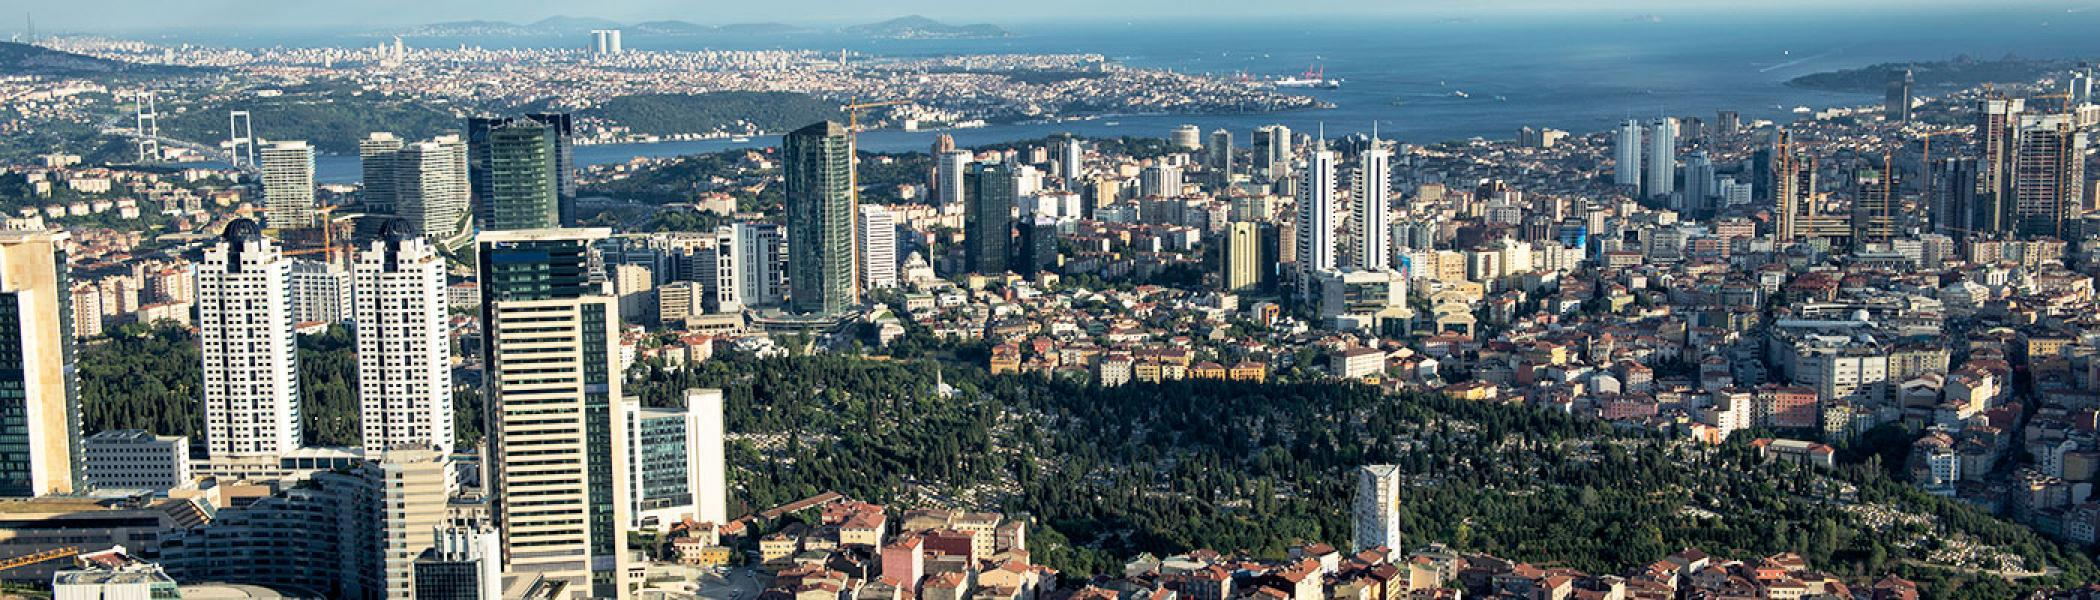 Aerial view of a cityscape with a park and an ocean surrounding the view